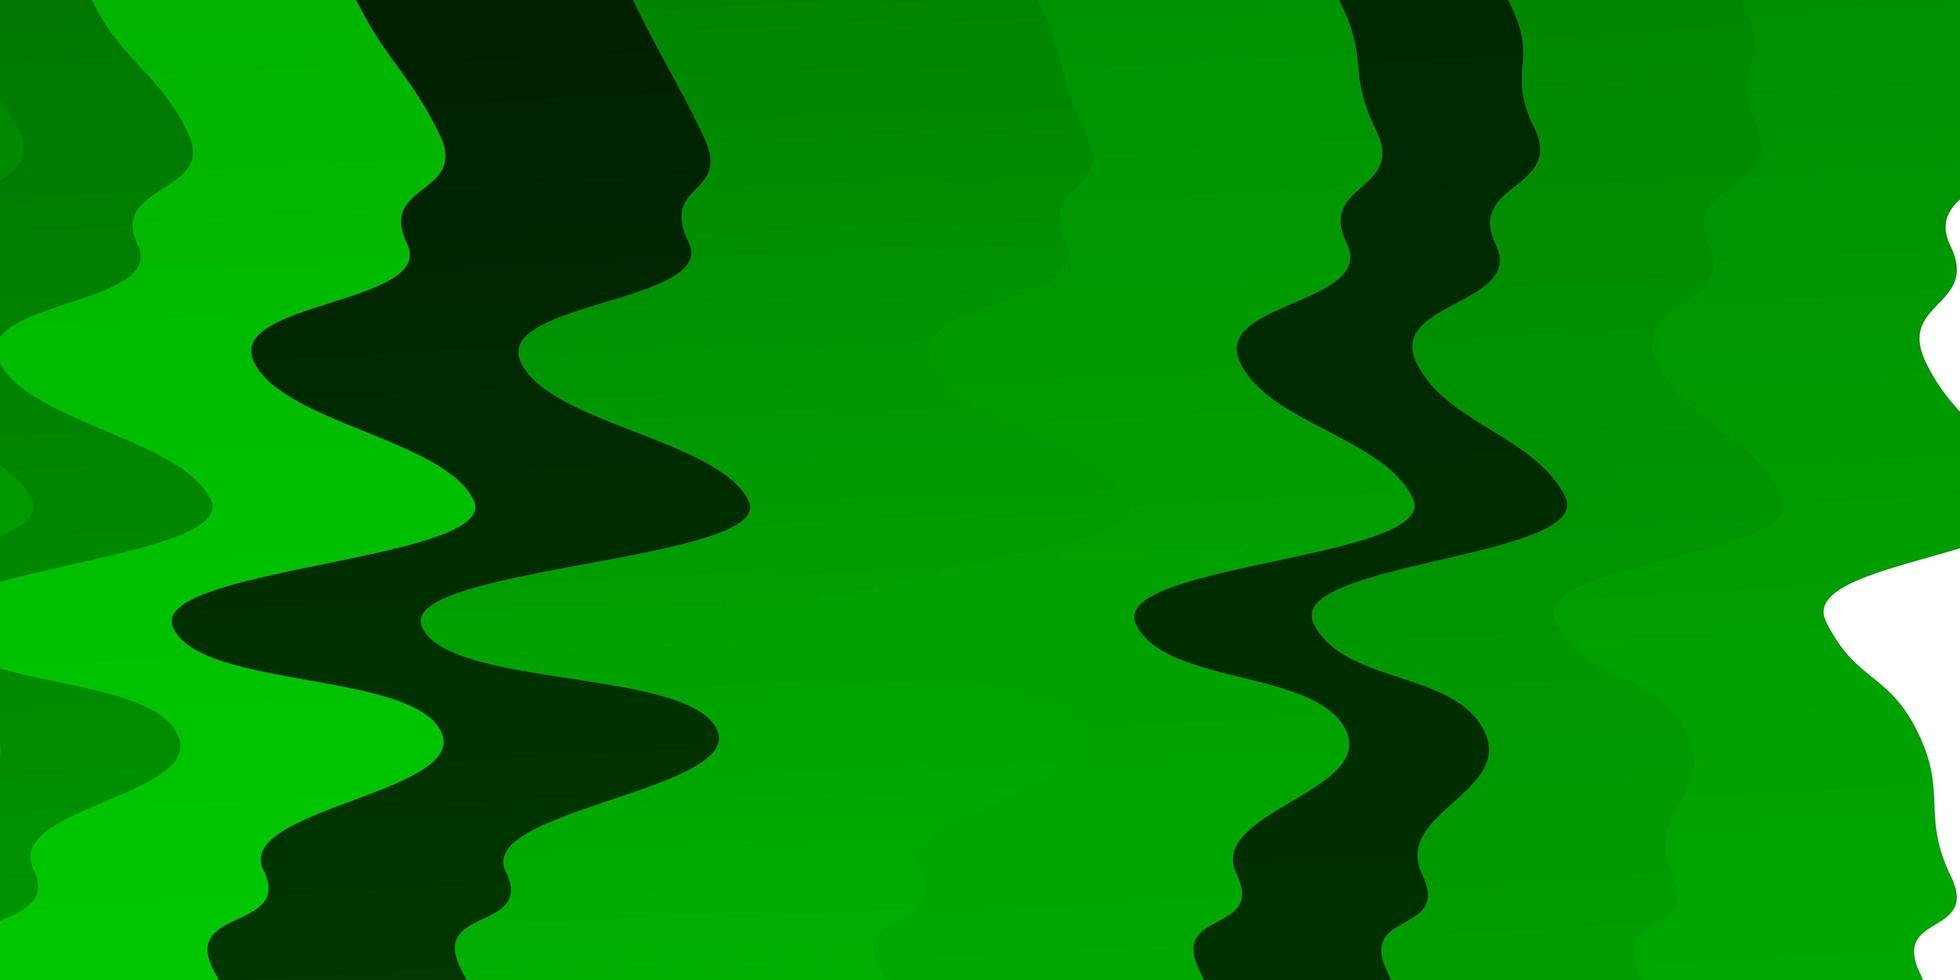 Green pattern with wry lines. vector